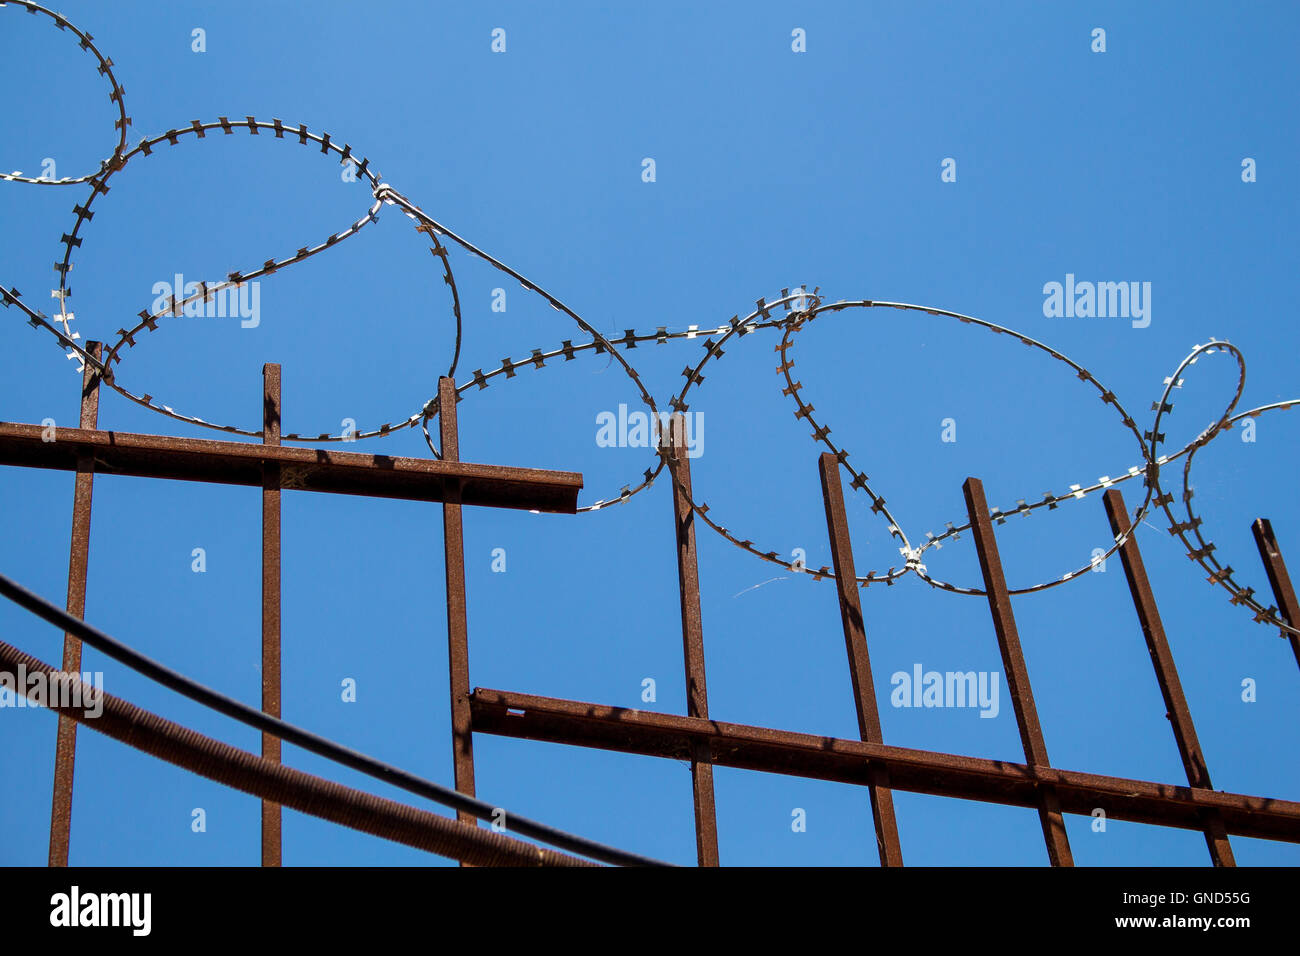 Enlightened barbed wire on the top of a metal fence. Bright blue sky in the background. - Stock Image